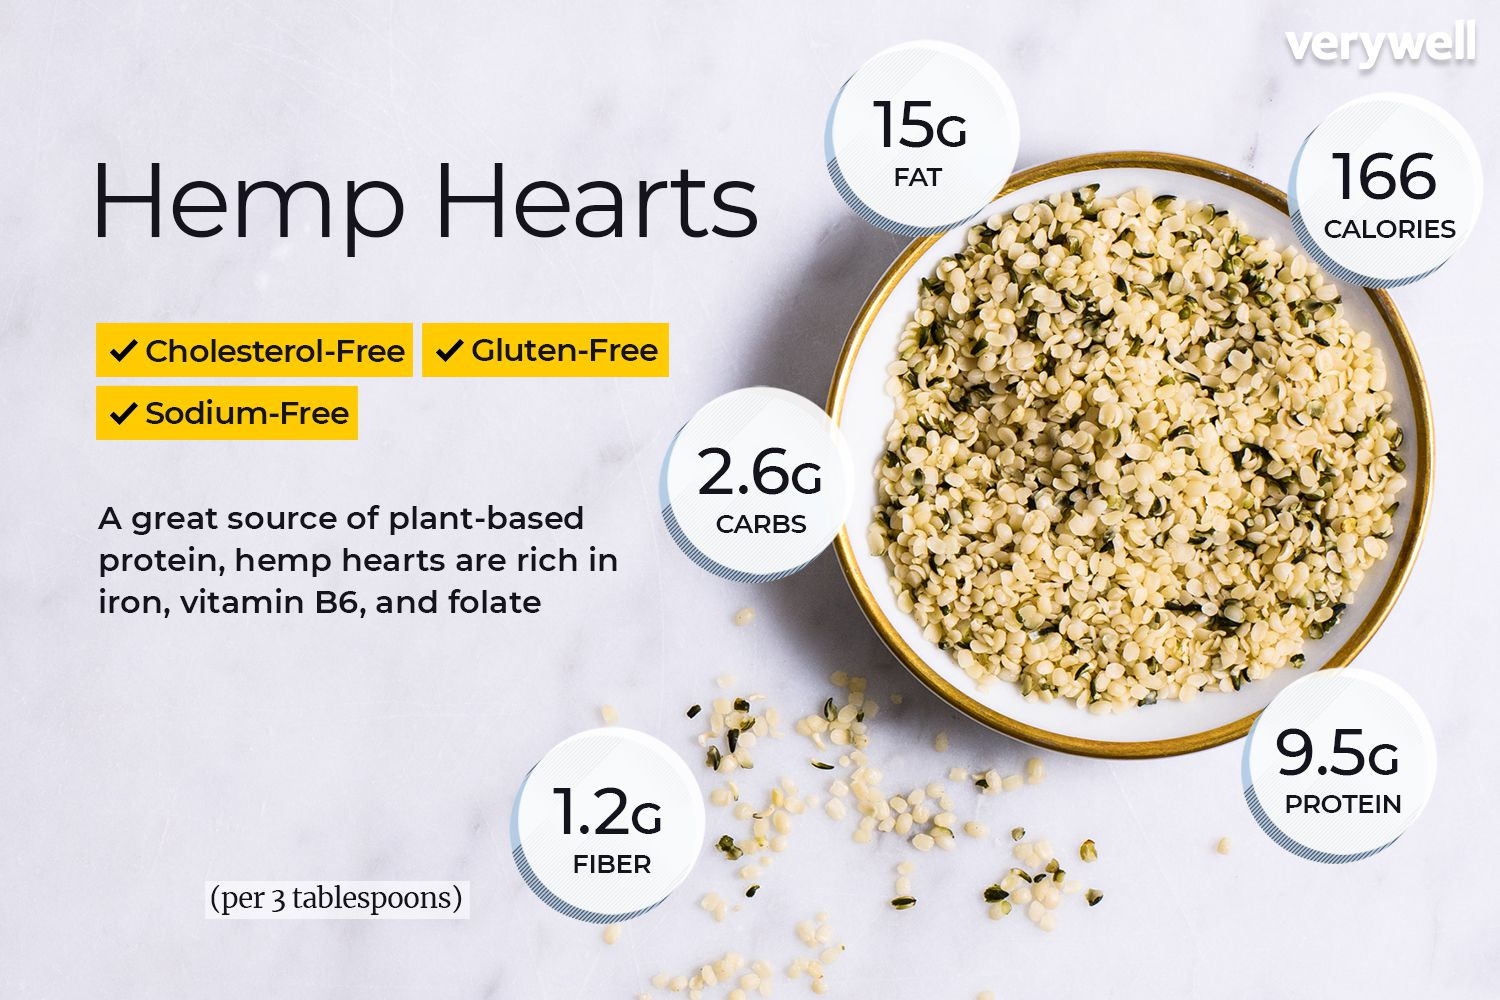 Why Hemp Hearts are Good for You?